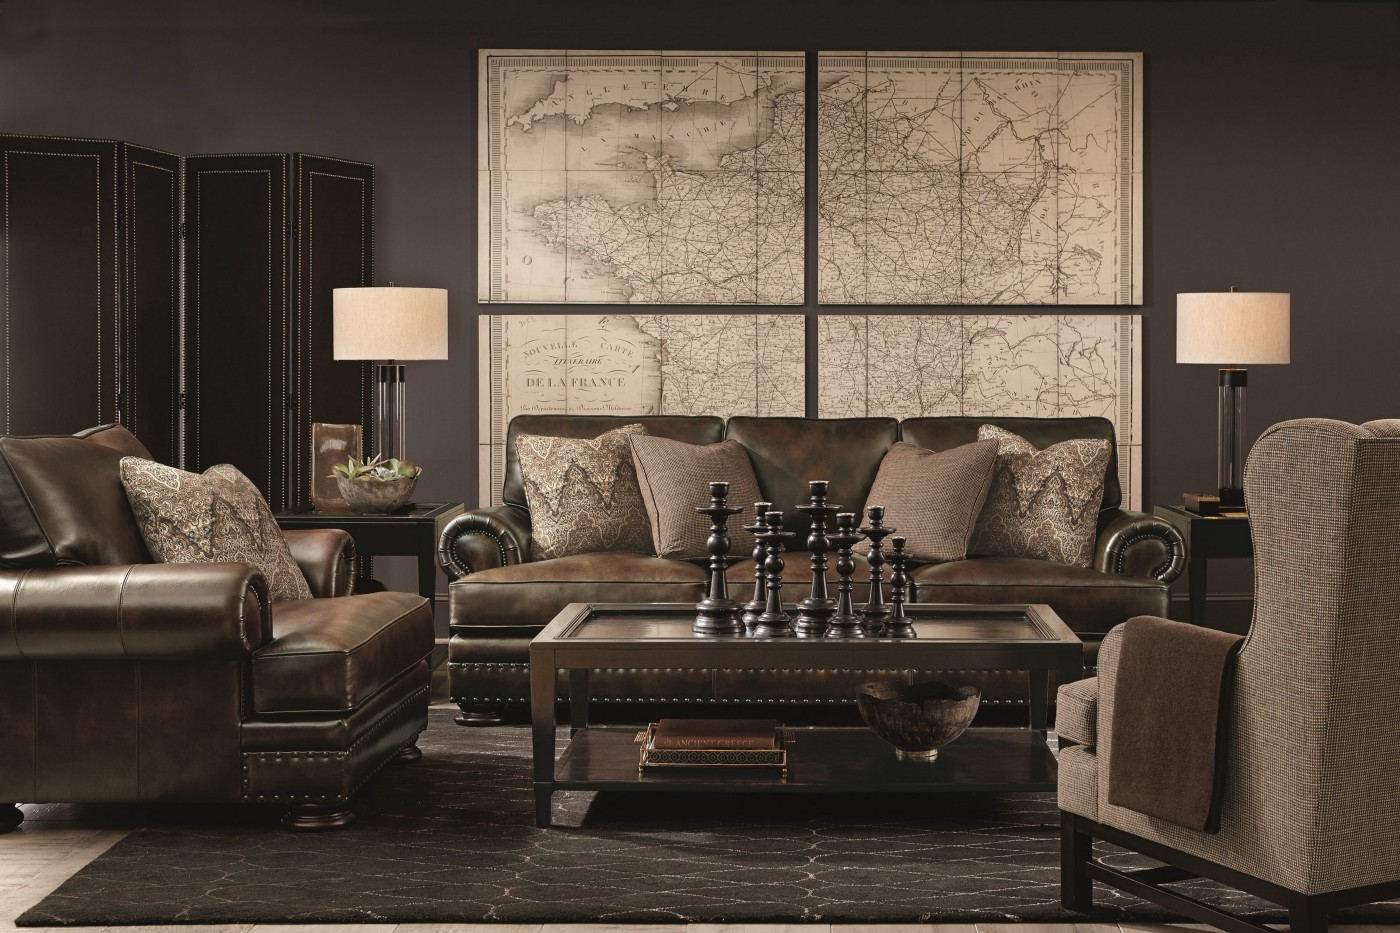 leather sofa living room with map on wall